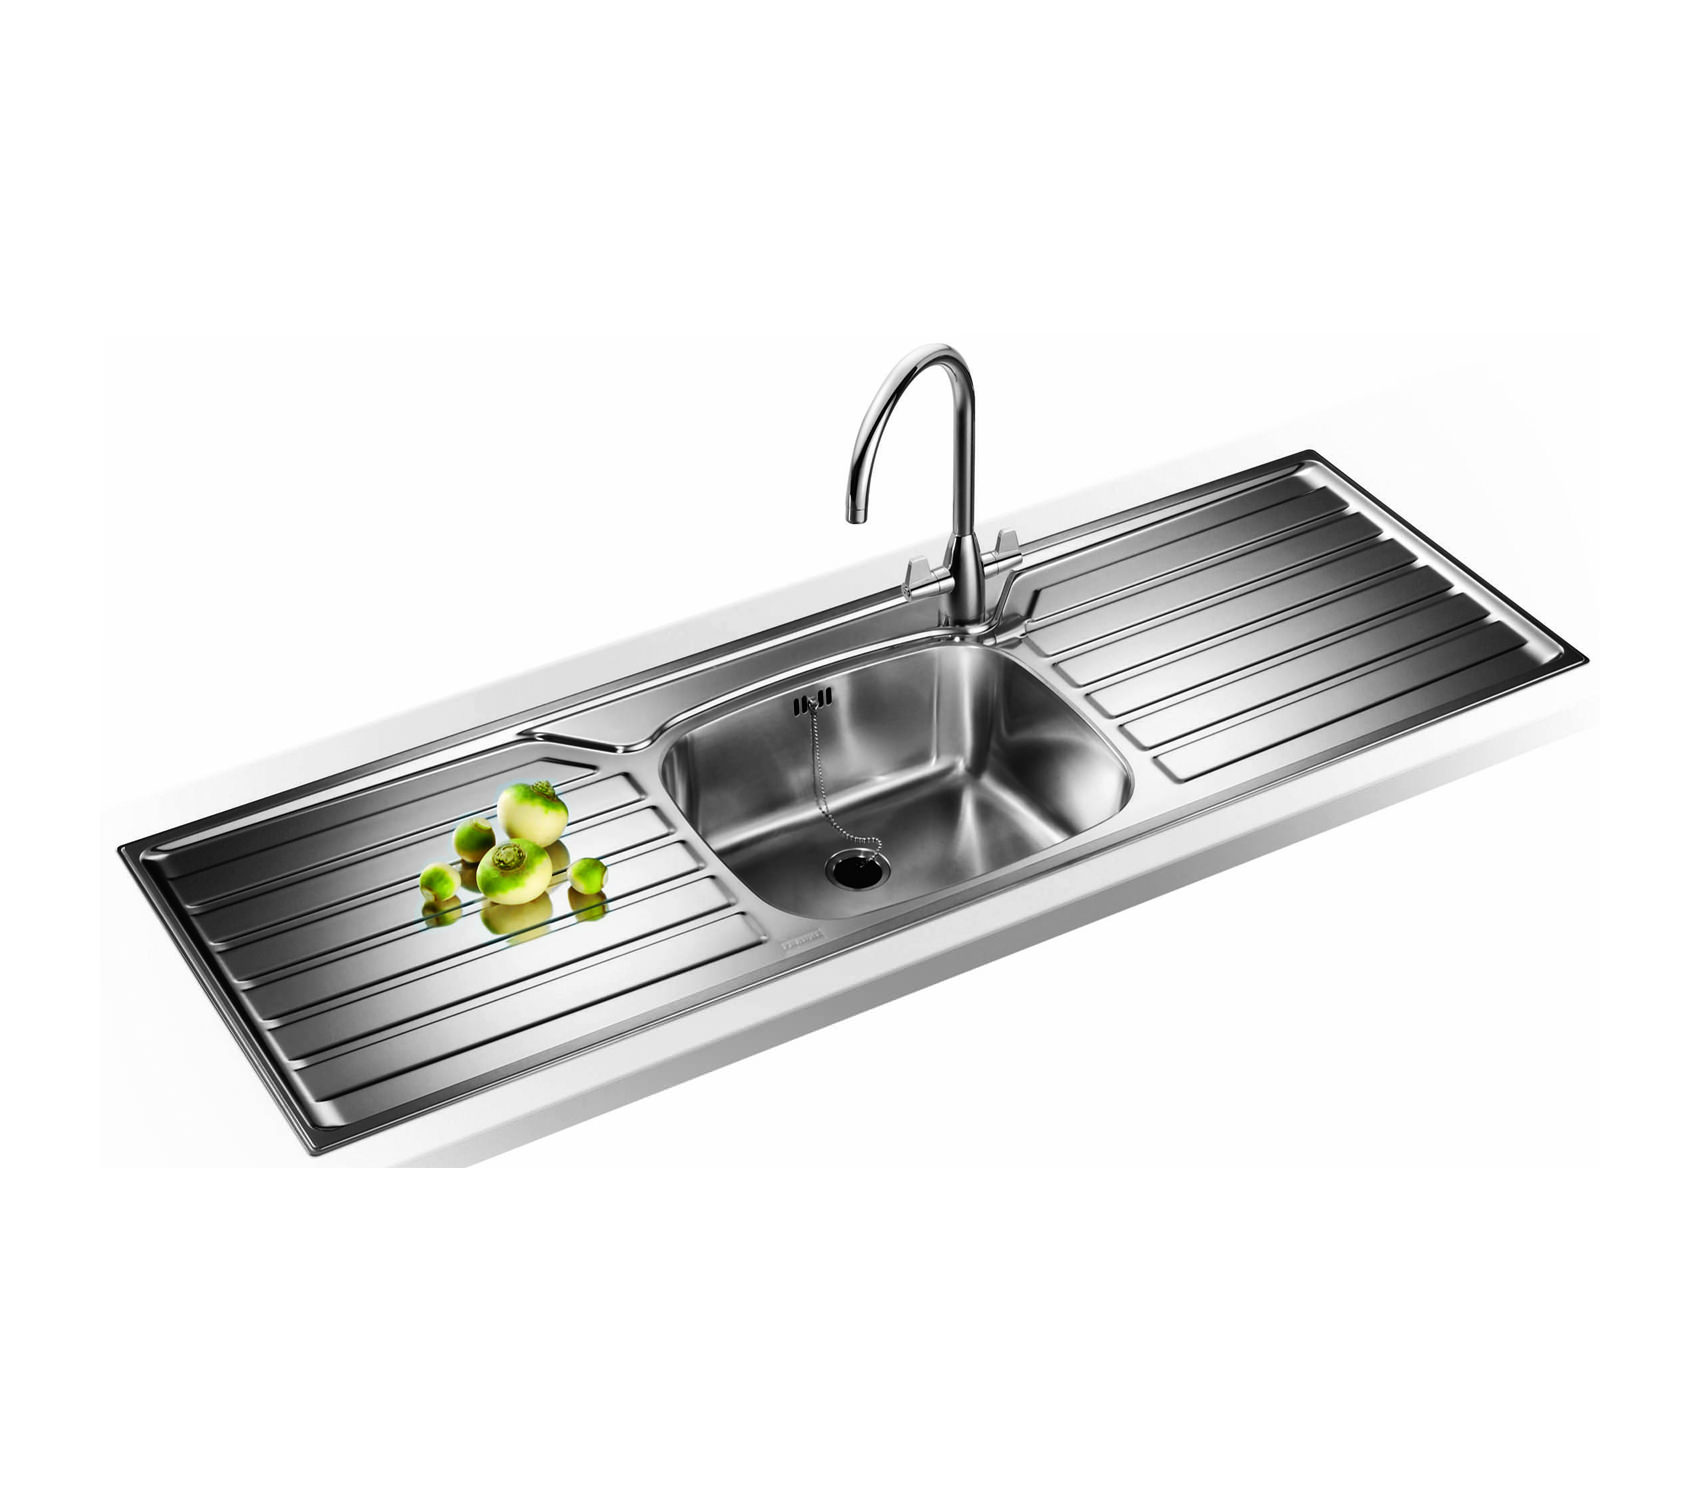 Franke Uk Designer Pack Ukx 612 Stainless Steel Sink And Tap